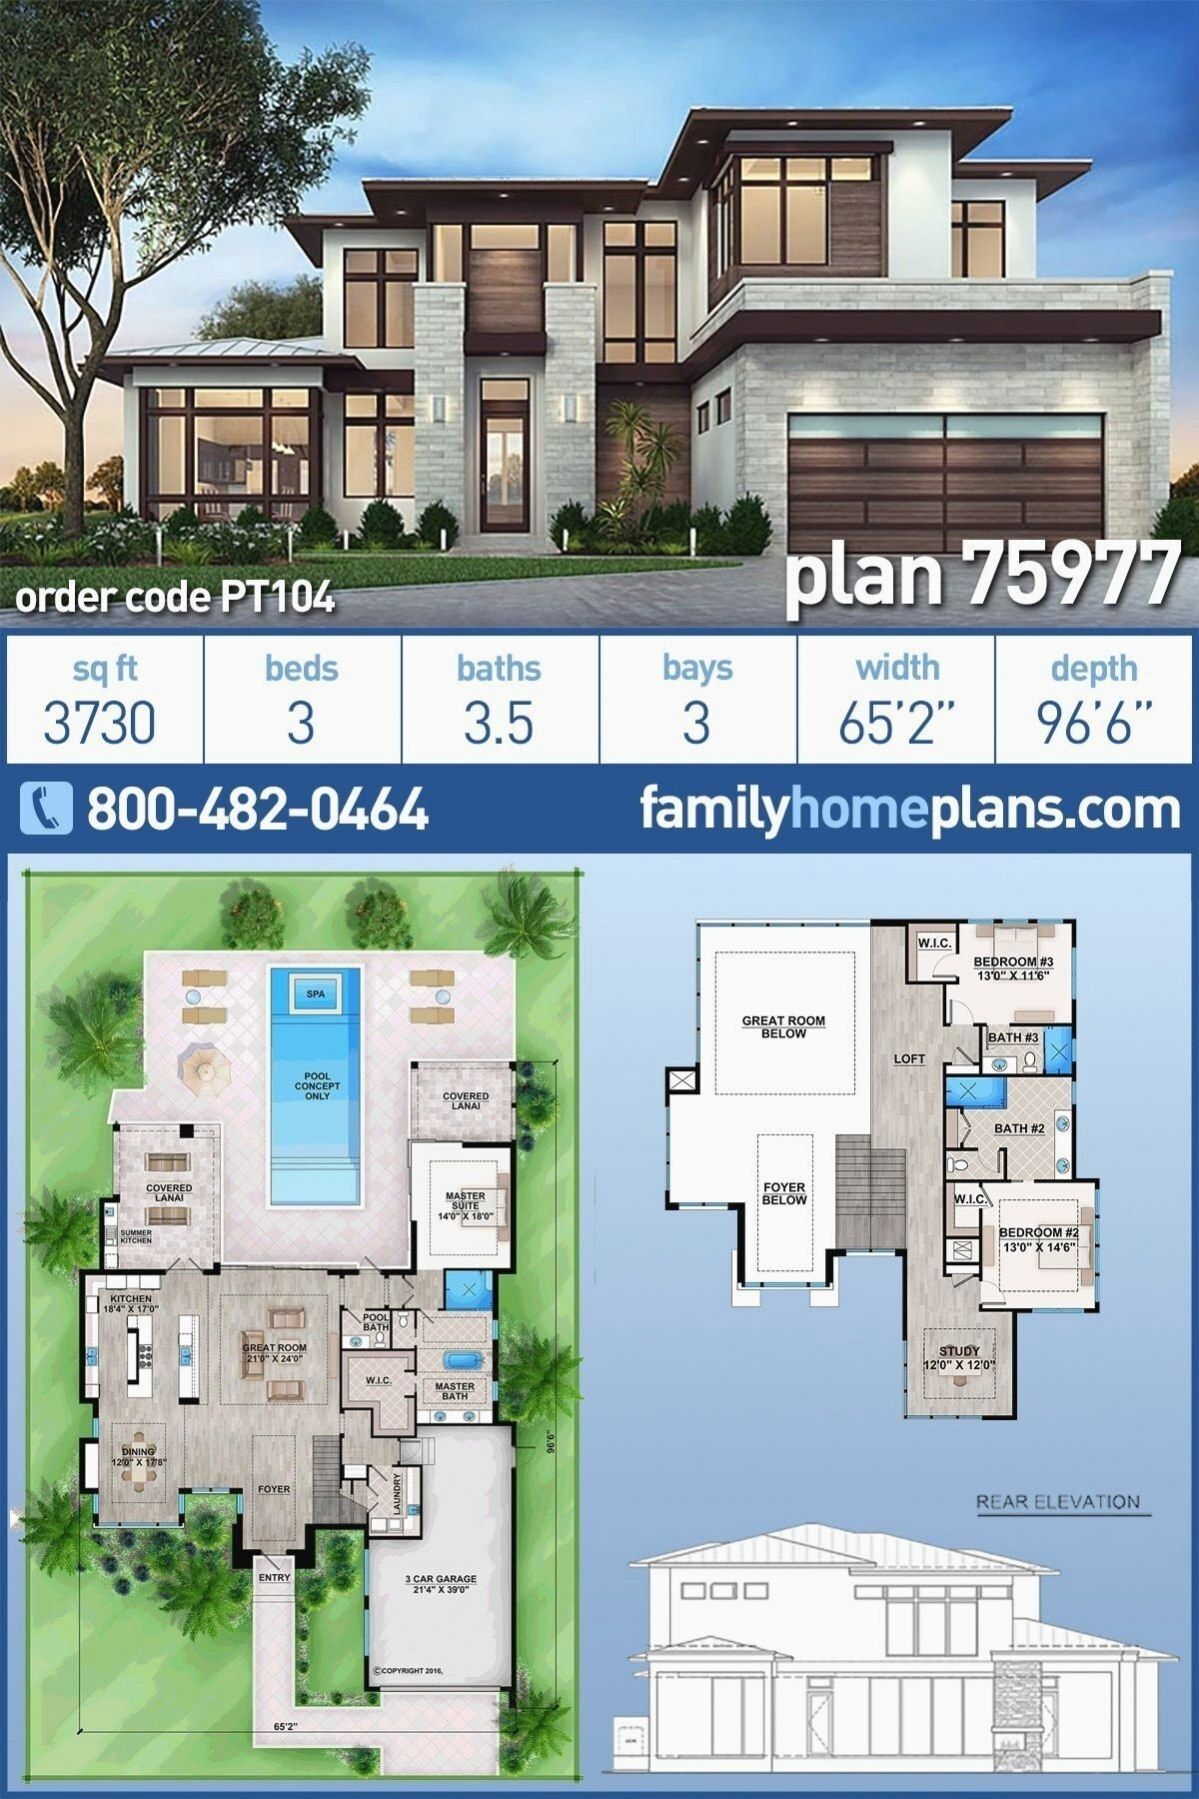 Contemporary House Plan Or A Modern Architectural Design Build This Modern Design Wit Plan Architecture Maison Maison Moderne Minecraft Plan Maison Architecte